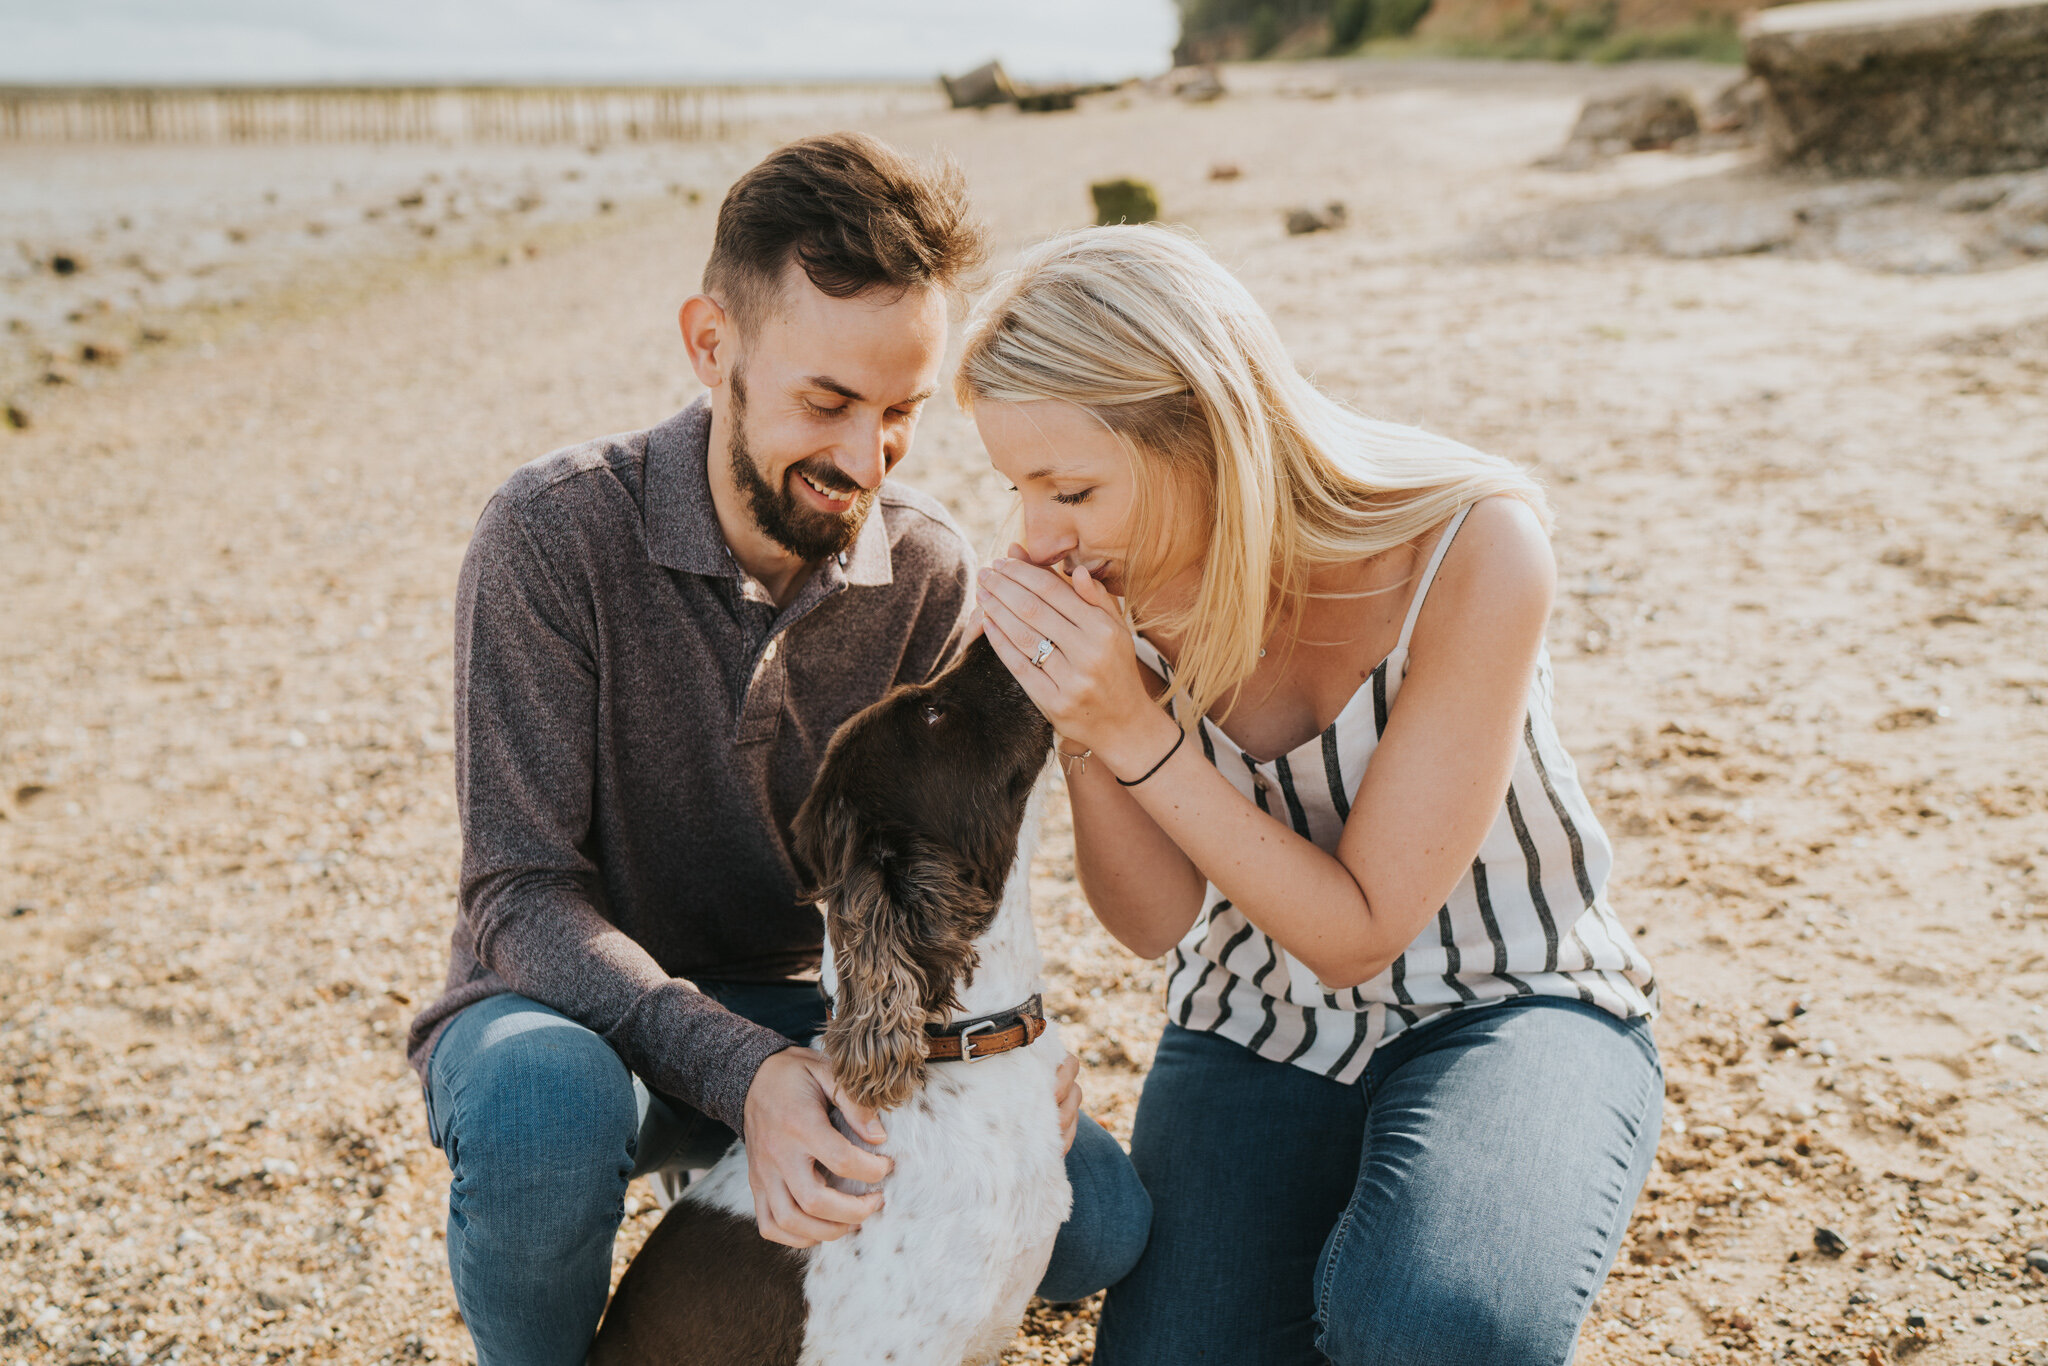 celebratory-beach-family-session-thomson-family-cudmore-grove-east-mersea-grace-elizabeth-colchester-essex-devon-suffolk-and-norfolk-alternative-wedding-and-family-photographer (39 of 53).jpg